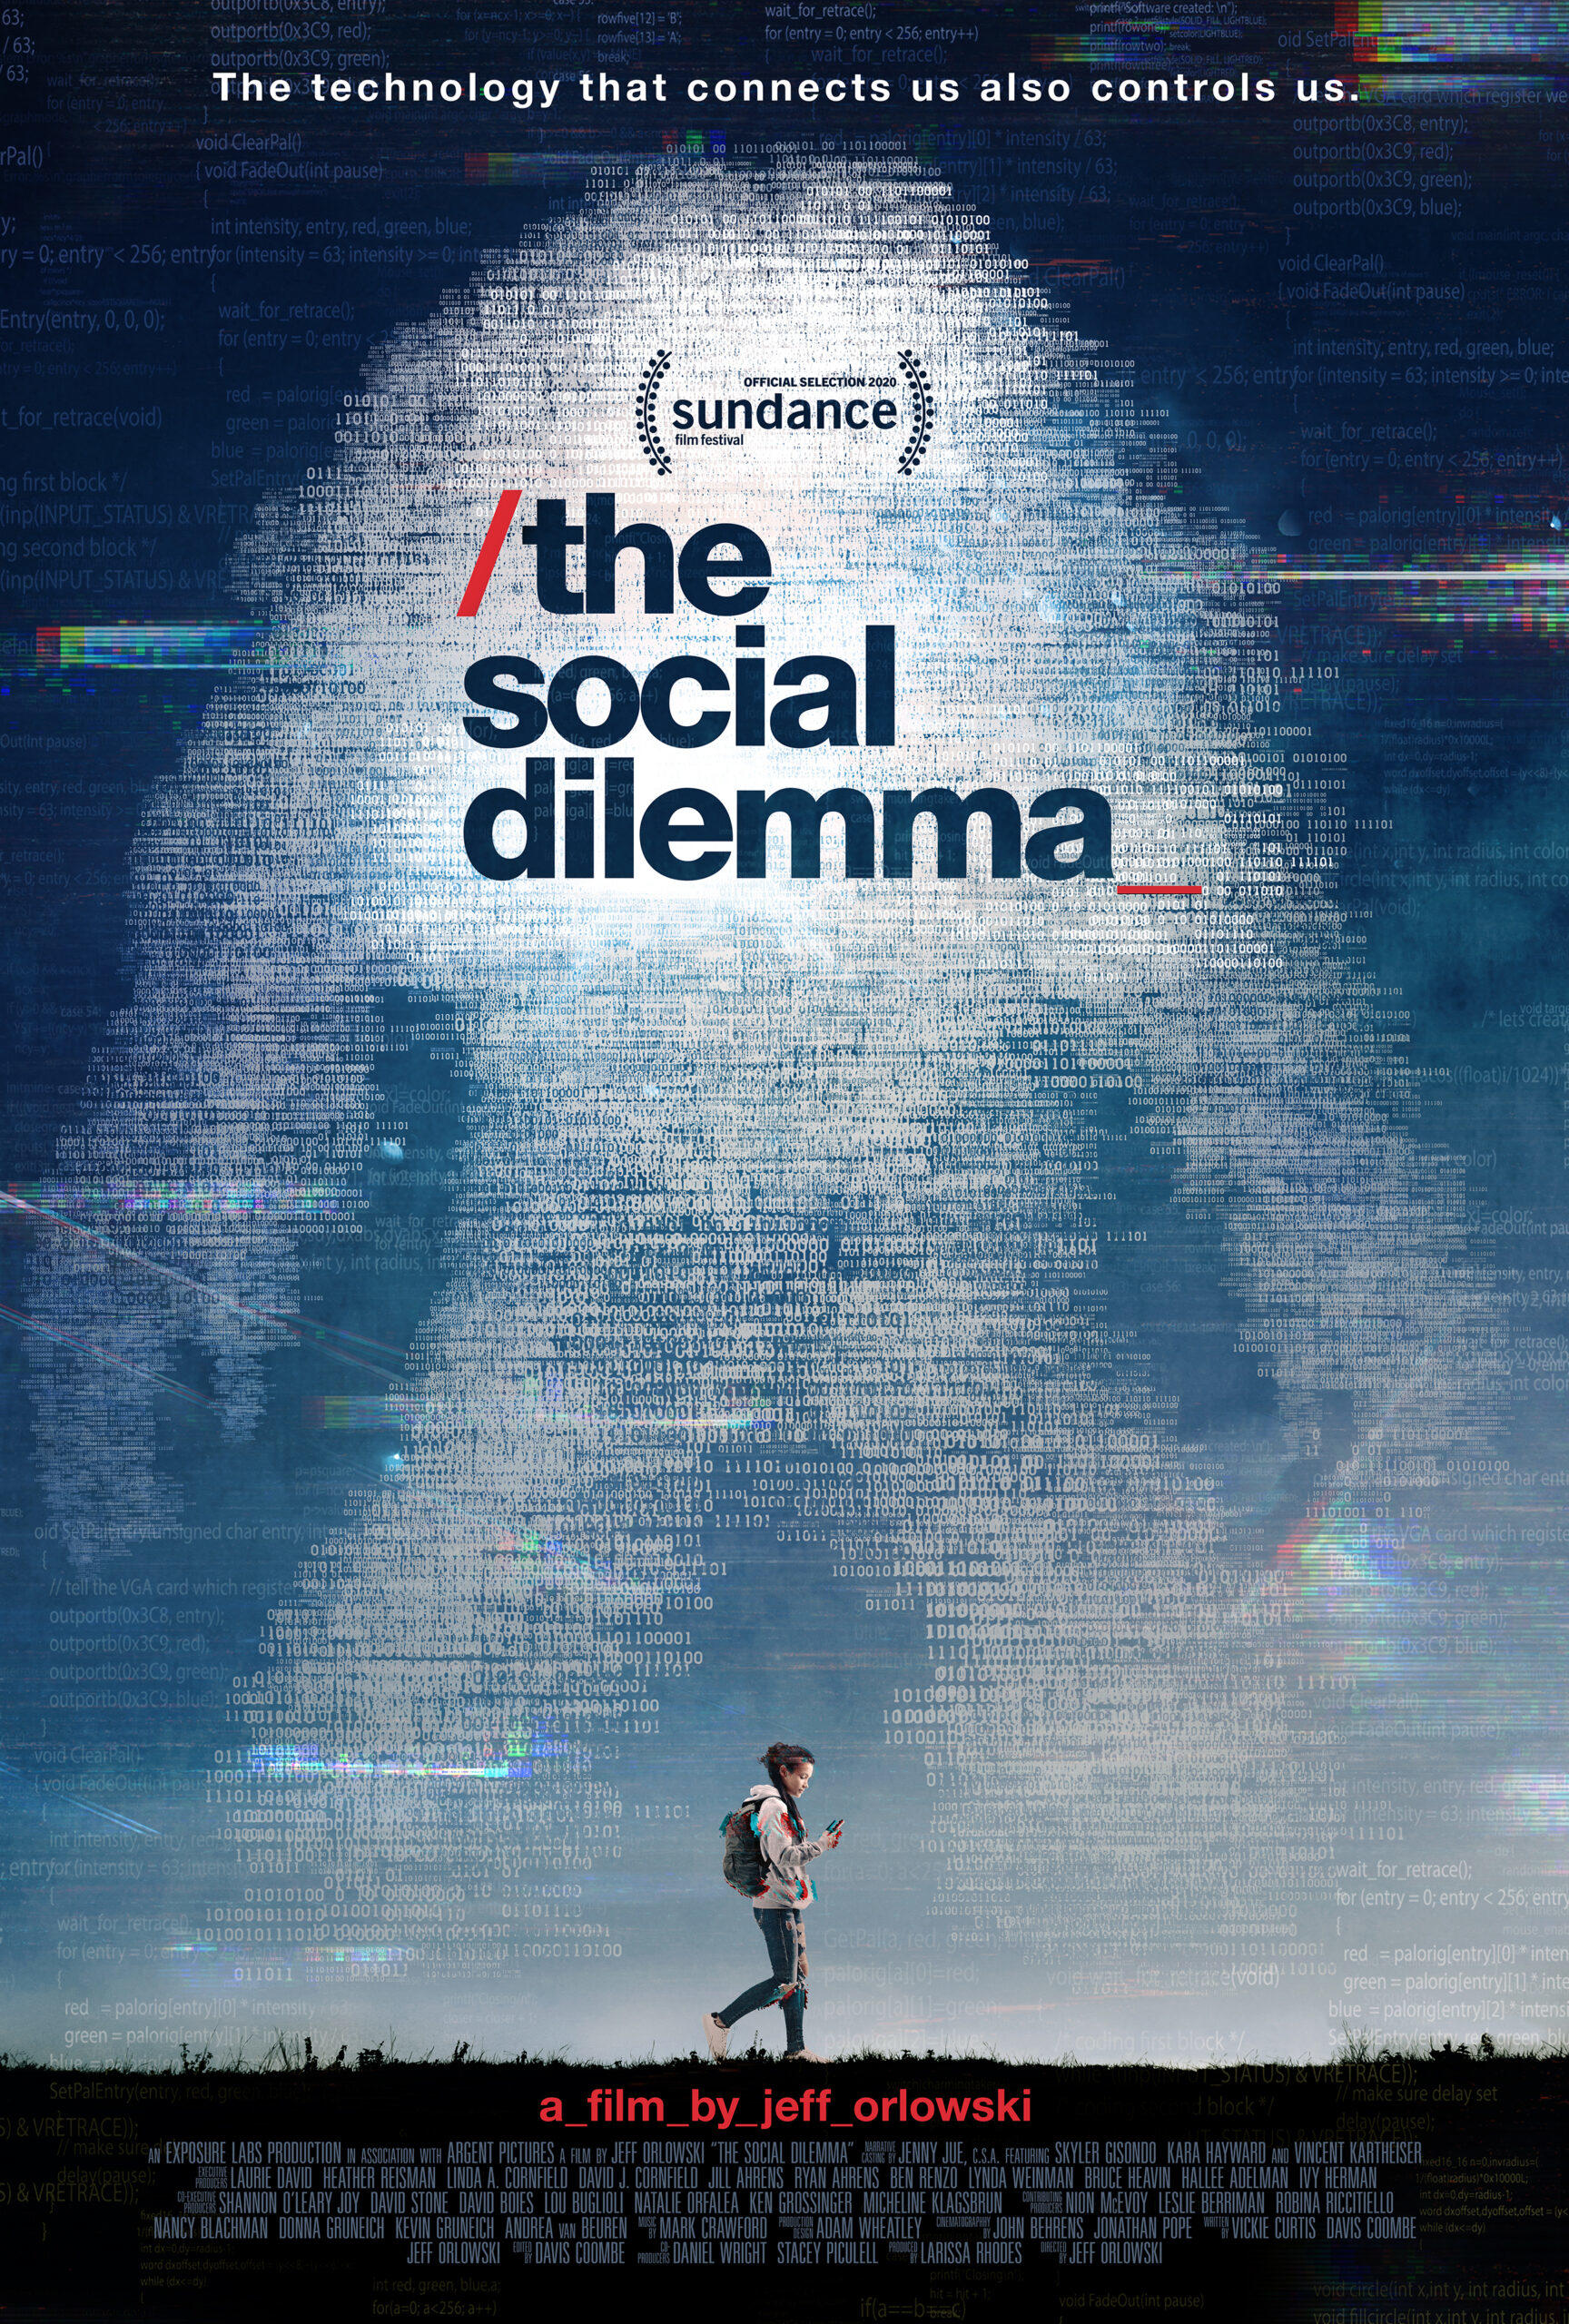 The Social Dilemma | Q&A with Director Jeff Orlowski and Producers Larissa Rhodes and Halle Adelman